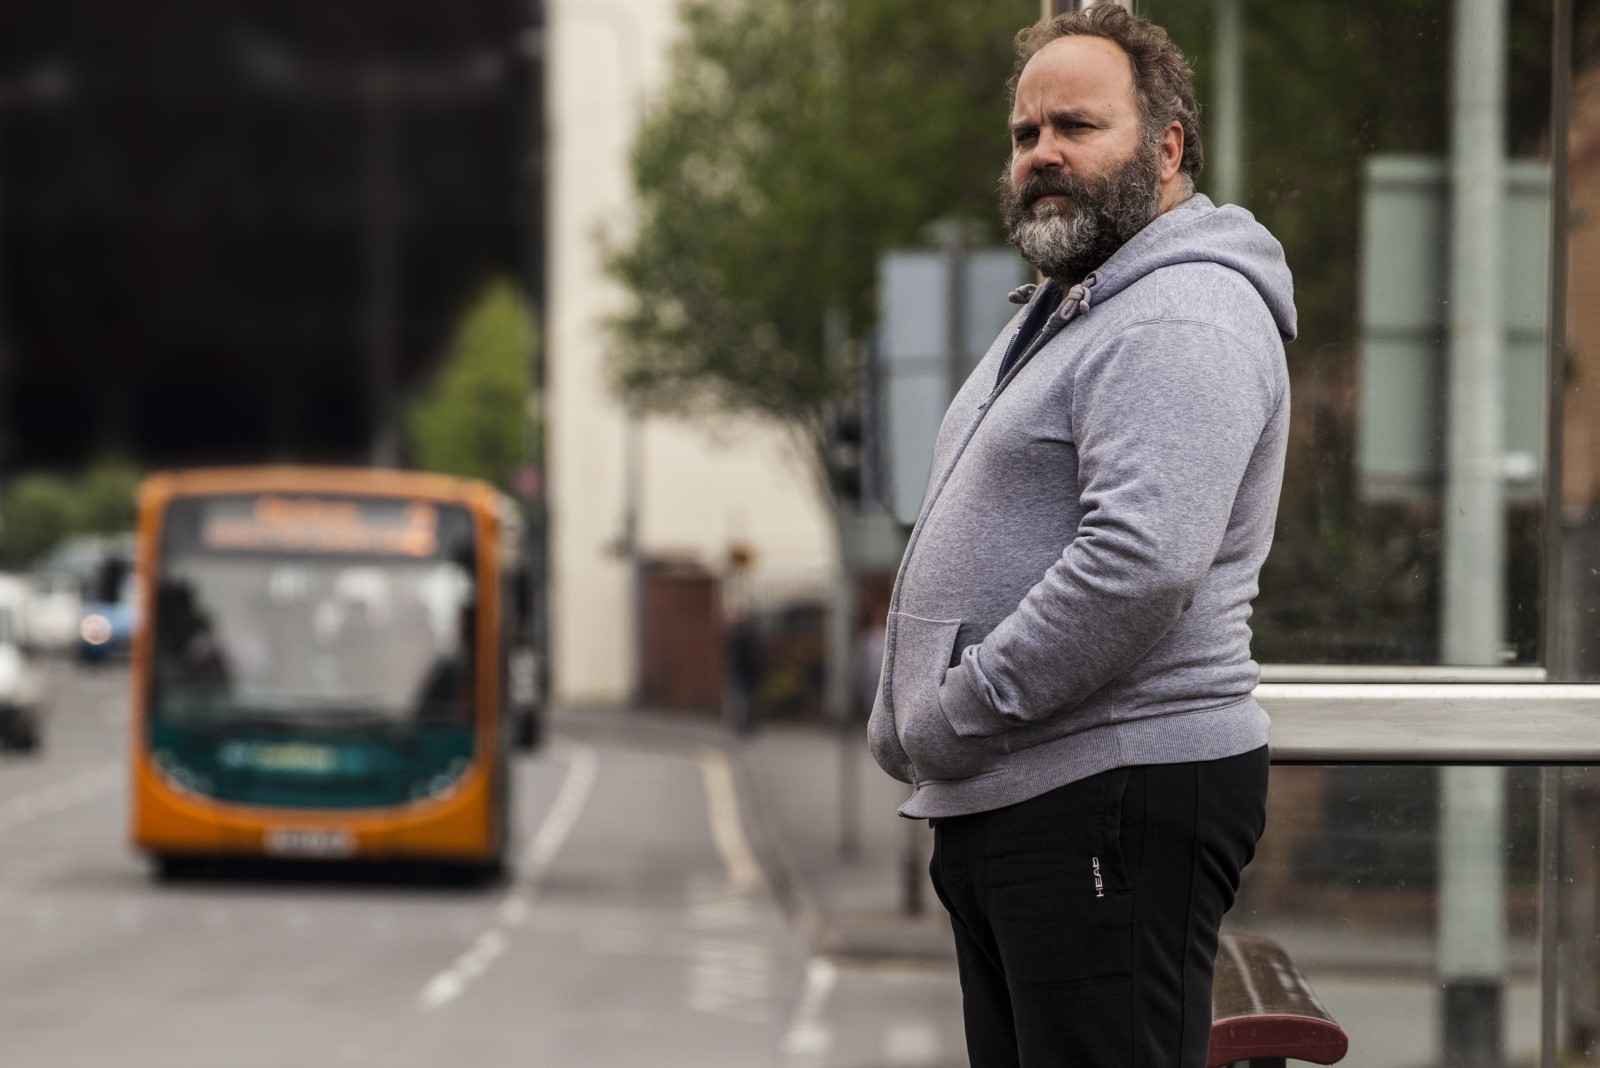 Man stood at a bus stop in a grey hoodie.jpg